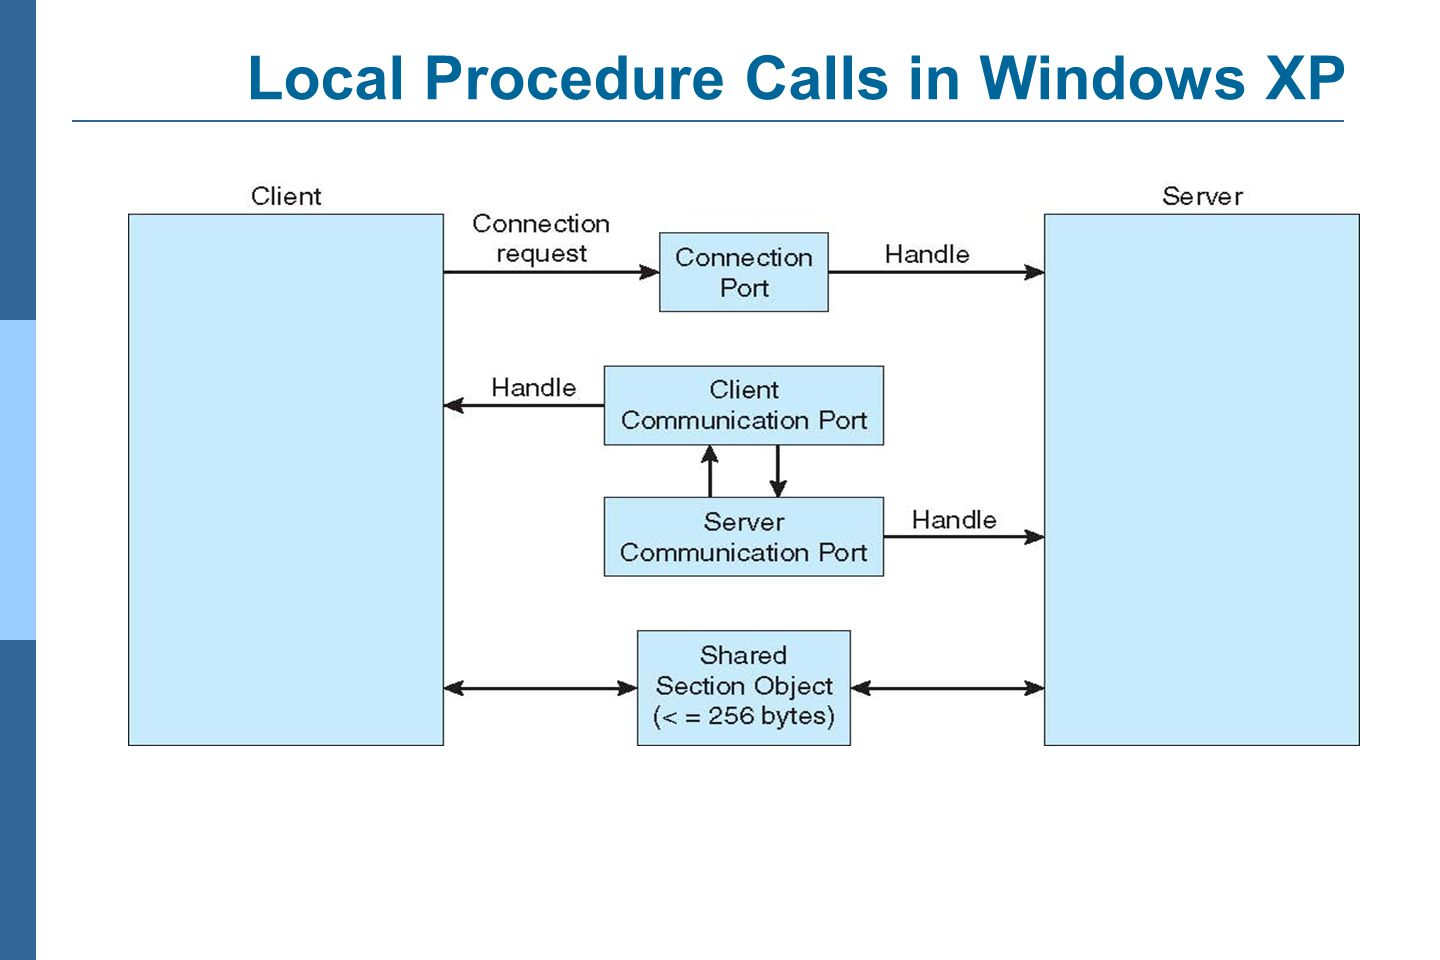 Local Procedure Calls in Windows XP